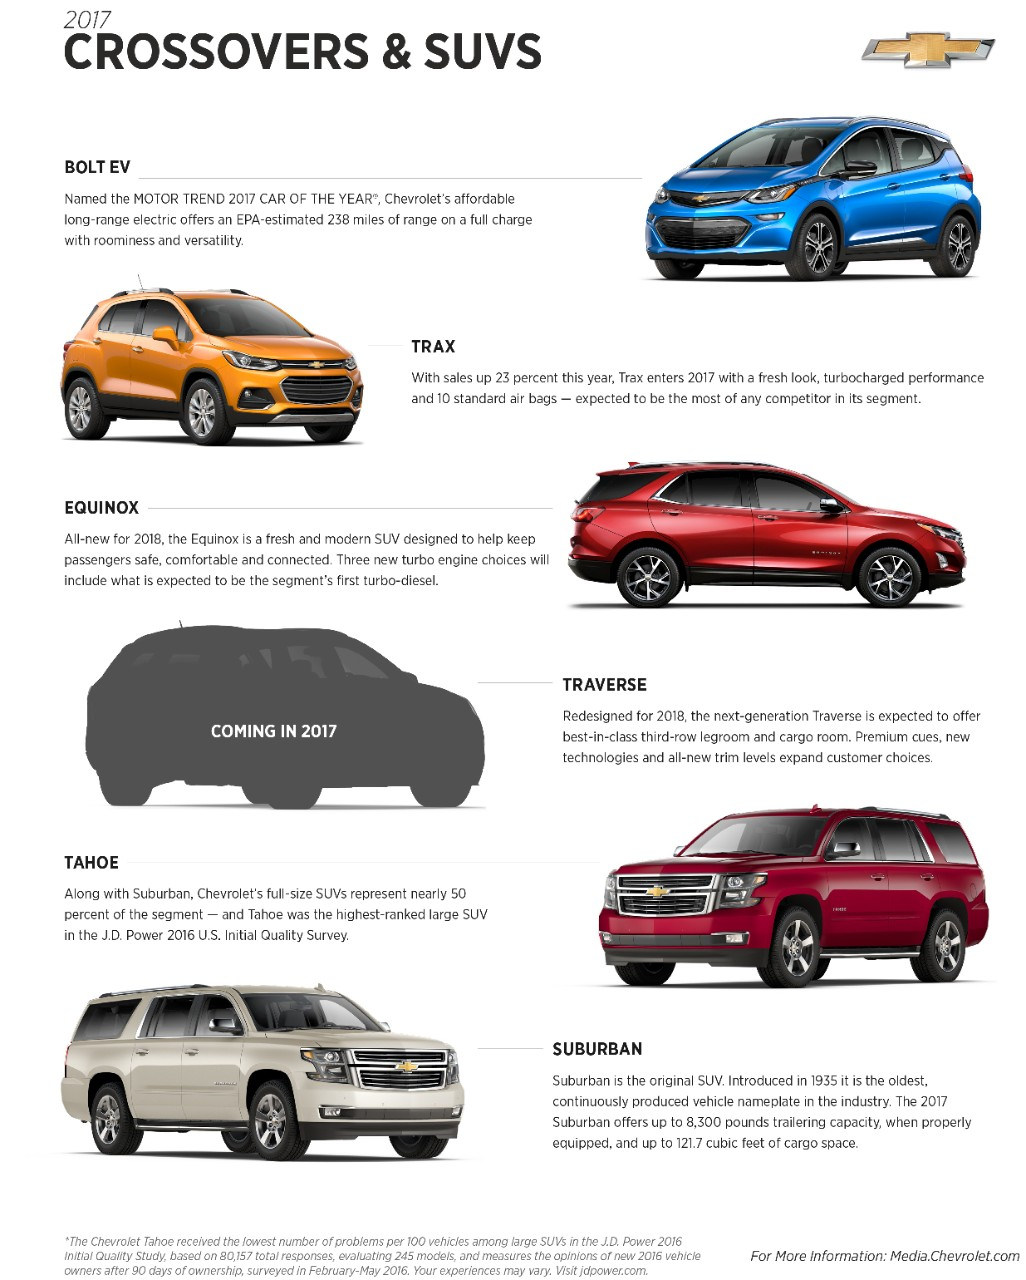 2017 Chevy crossover and SUV lineup fun facts